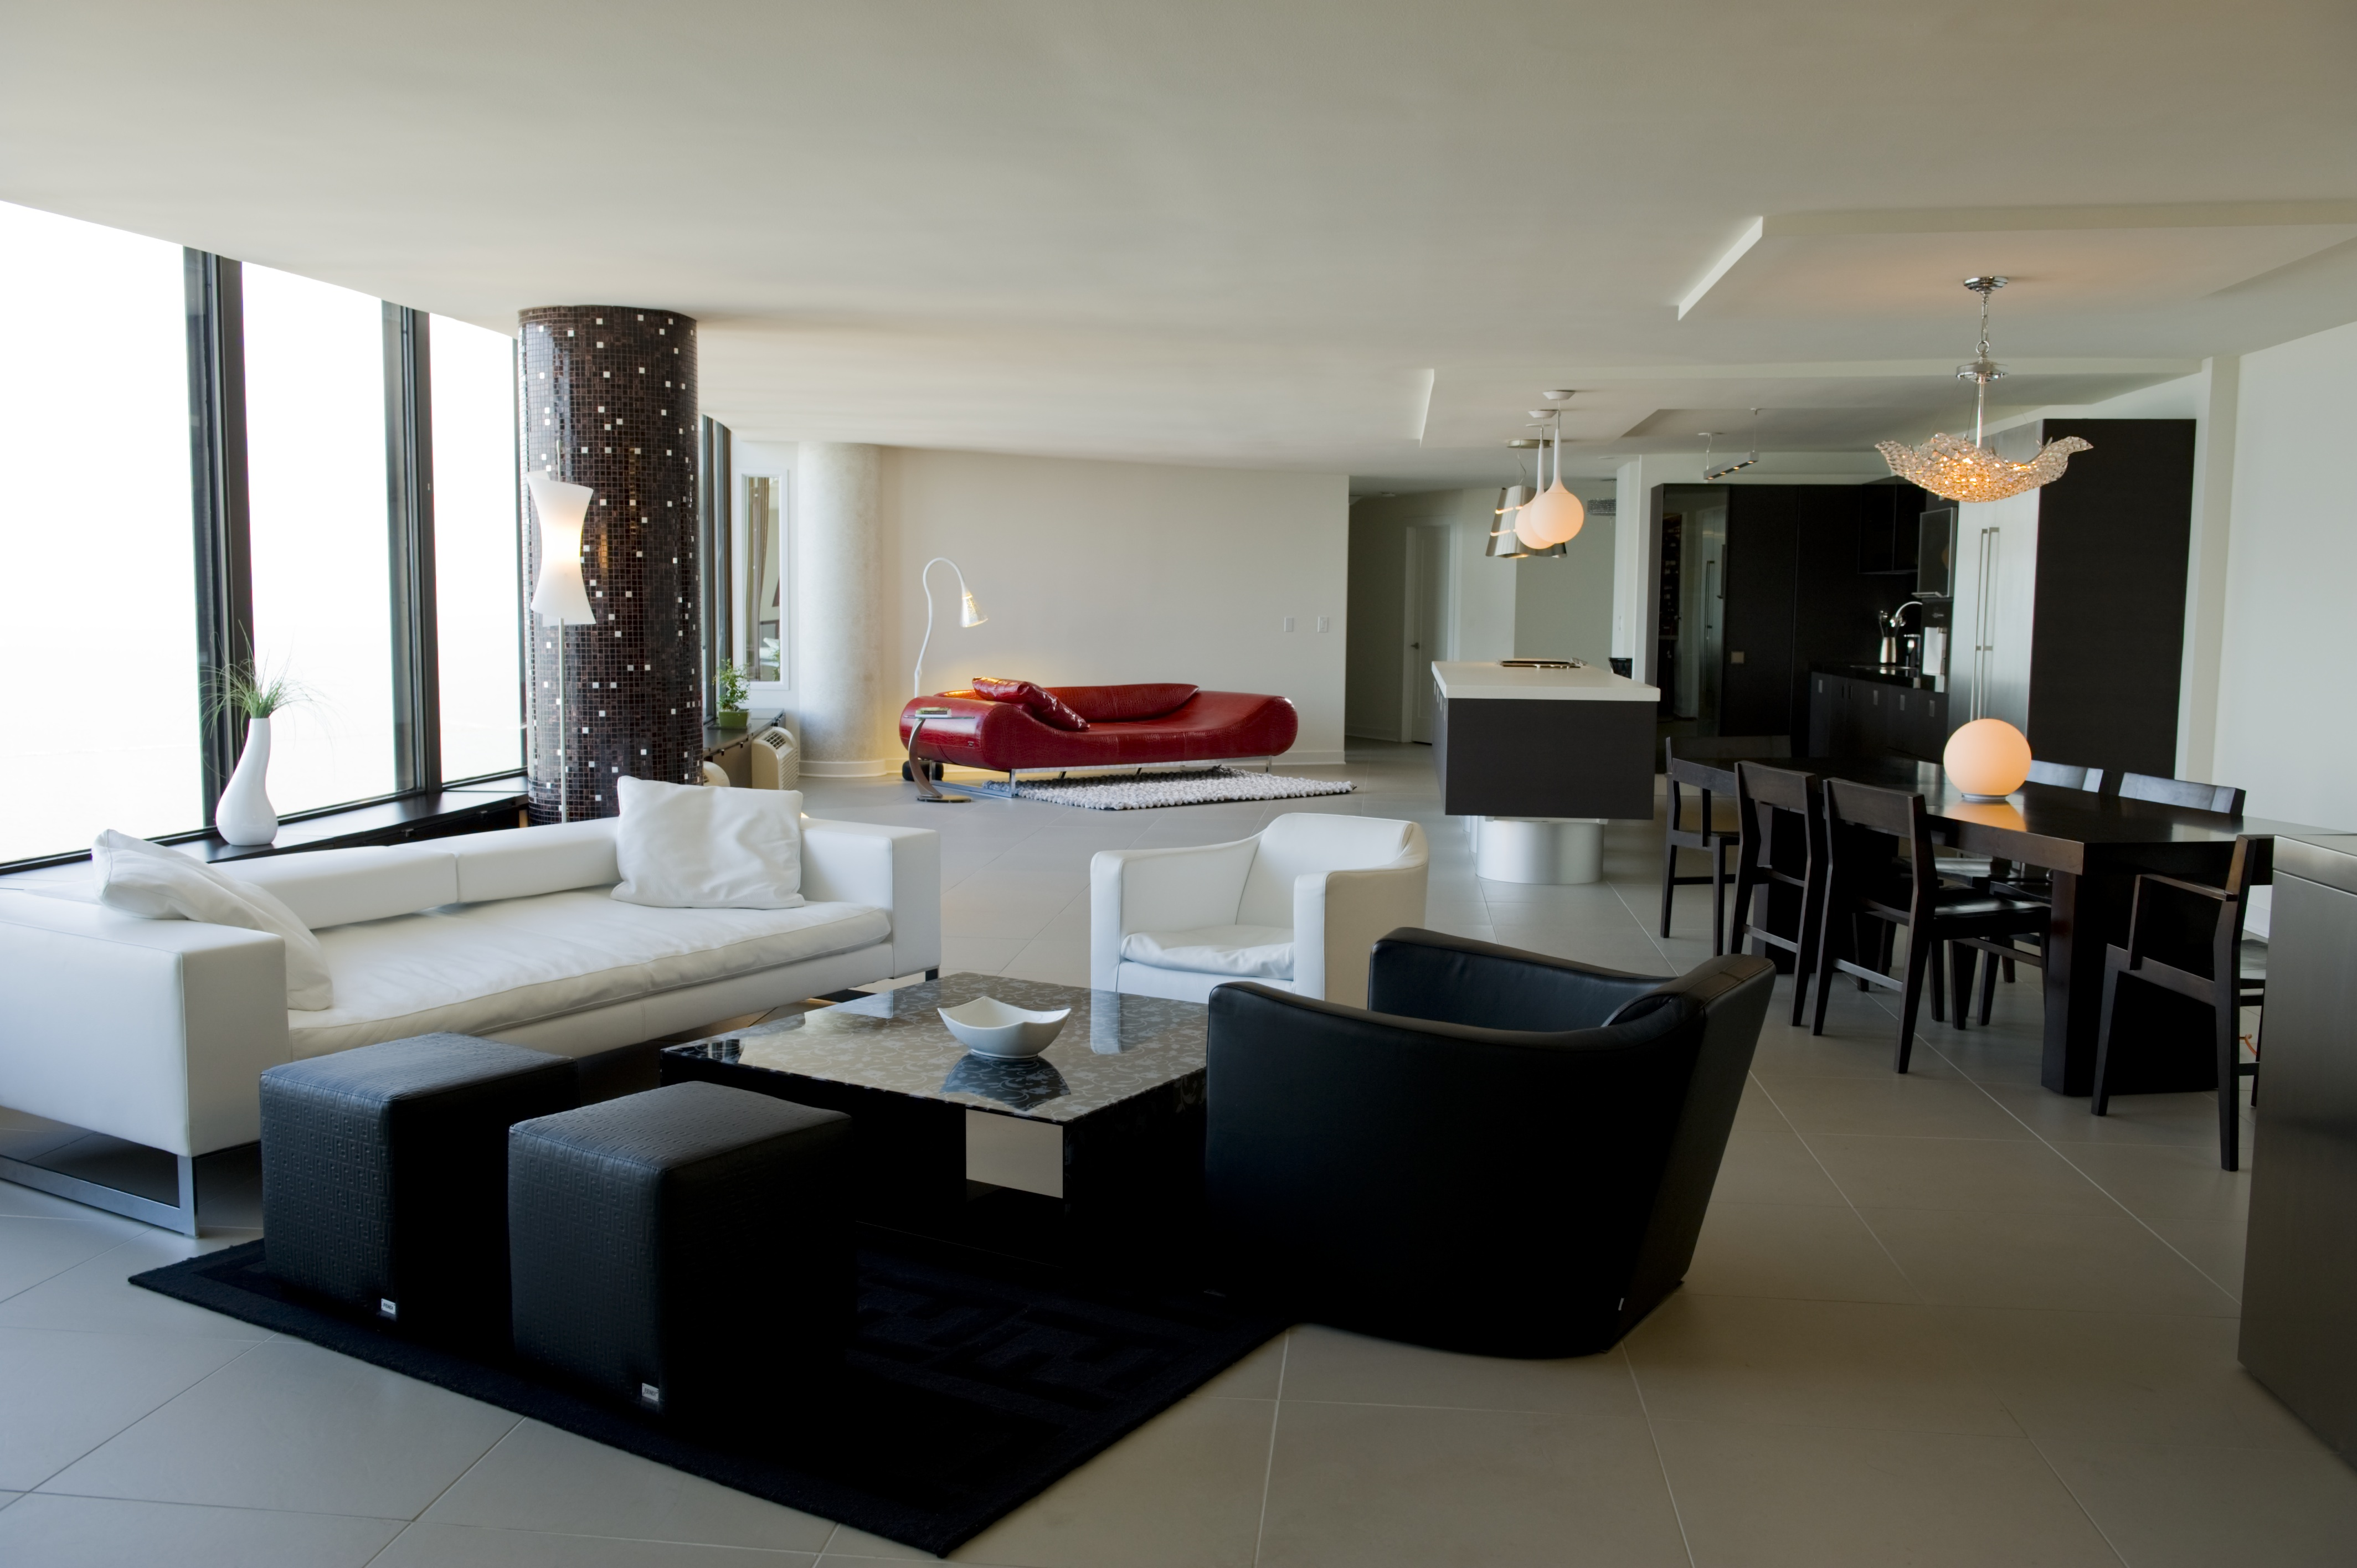 Two condo units were combined to create a large home. Fendi furniture is from Haute Living.